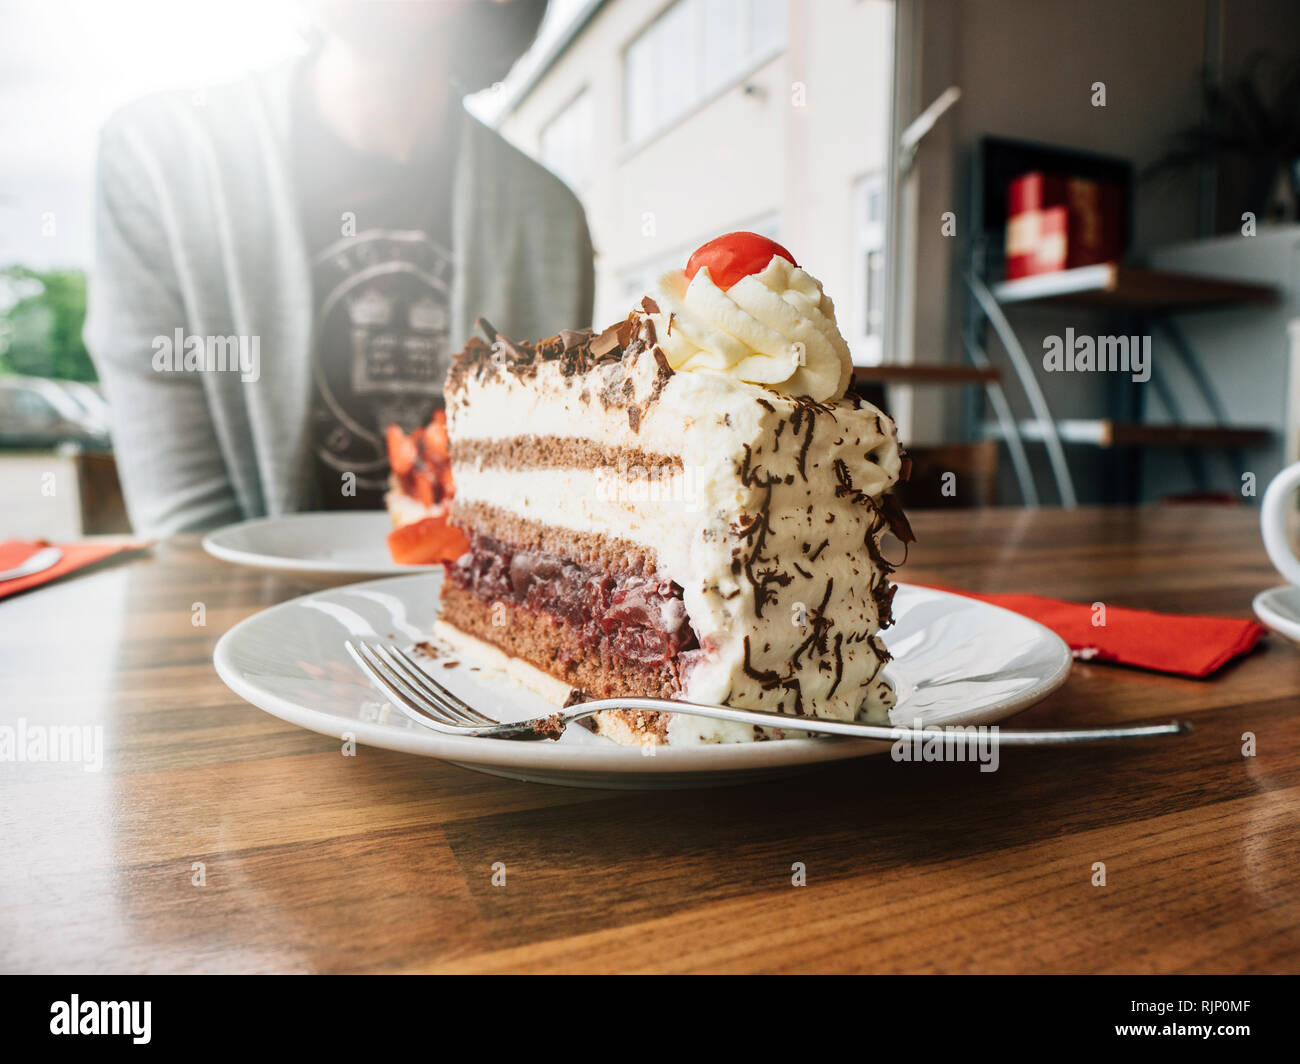 German woman having delicious strawberry Black Forest dessert with cup of coffee in cafeteria - Stock Image